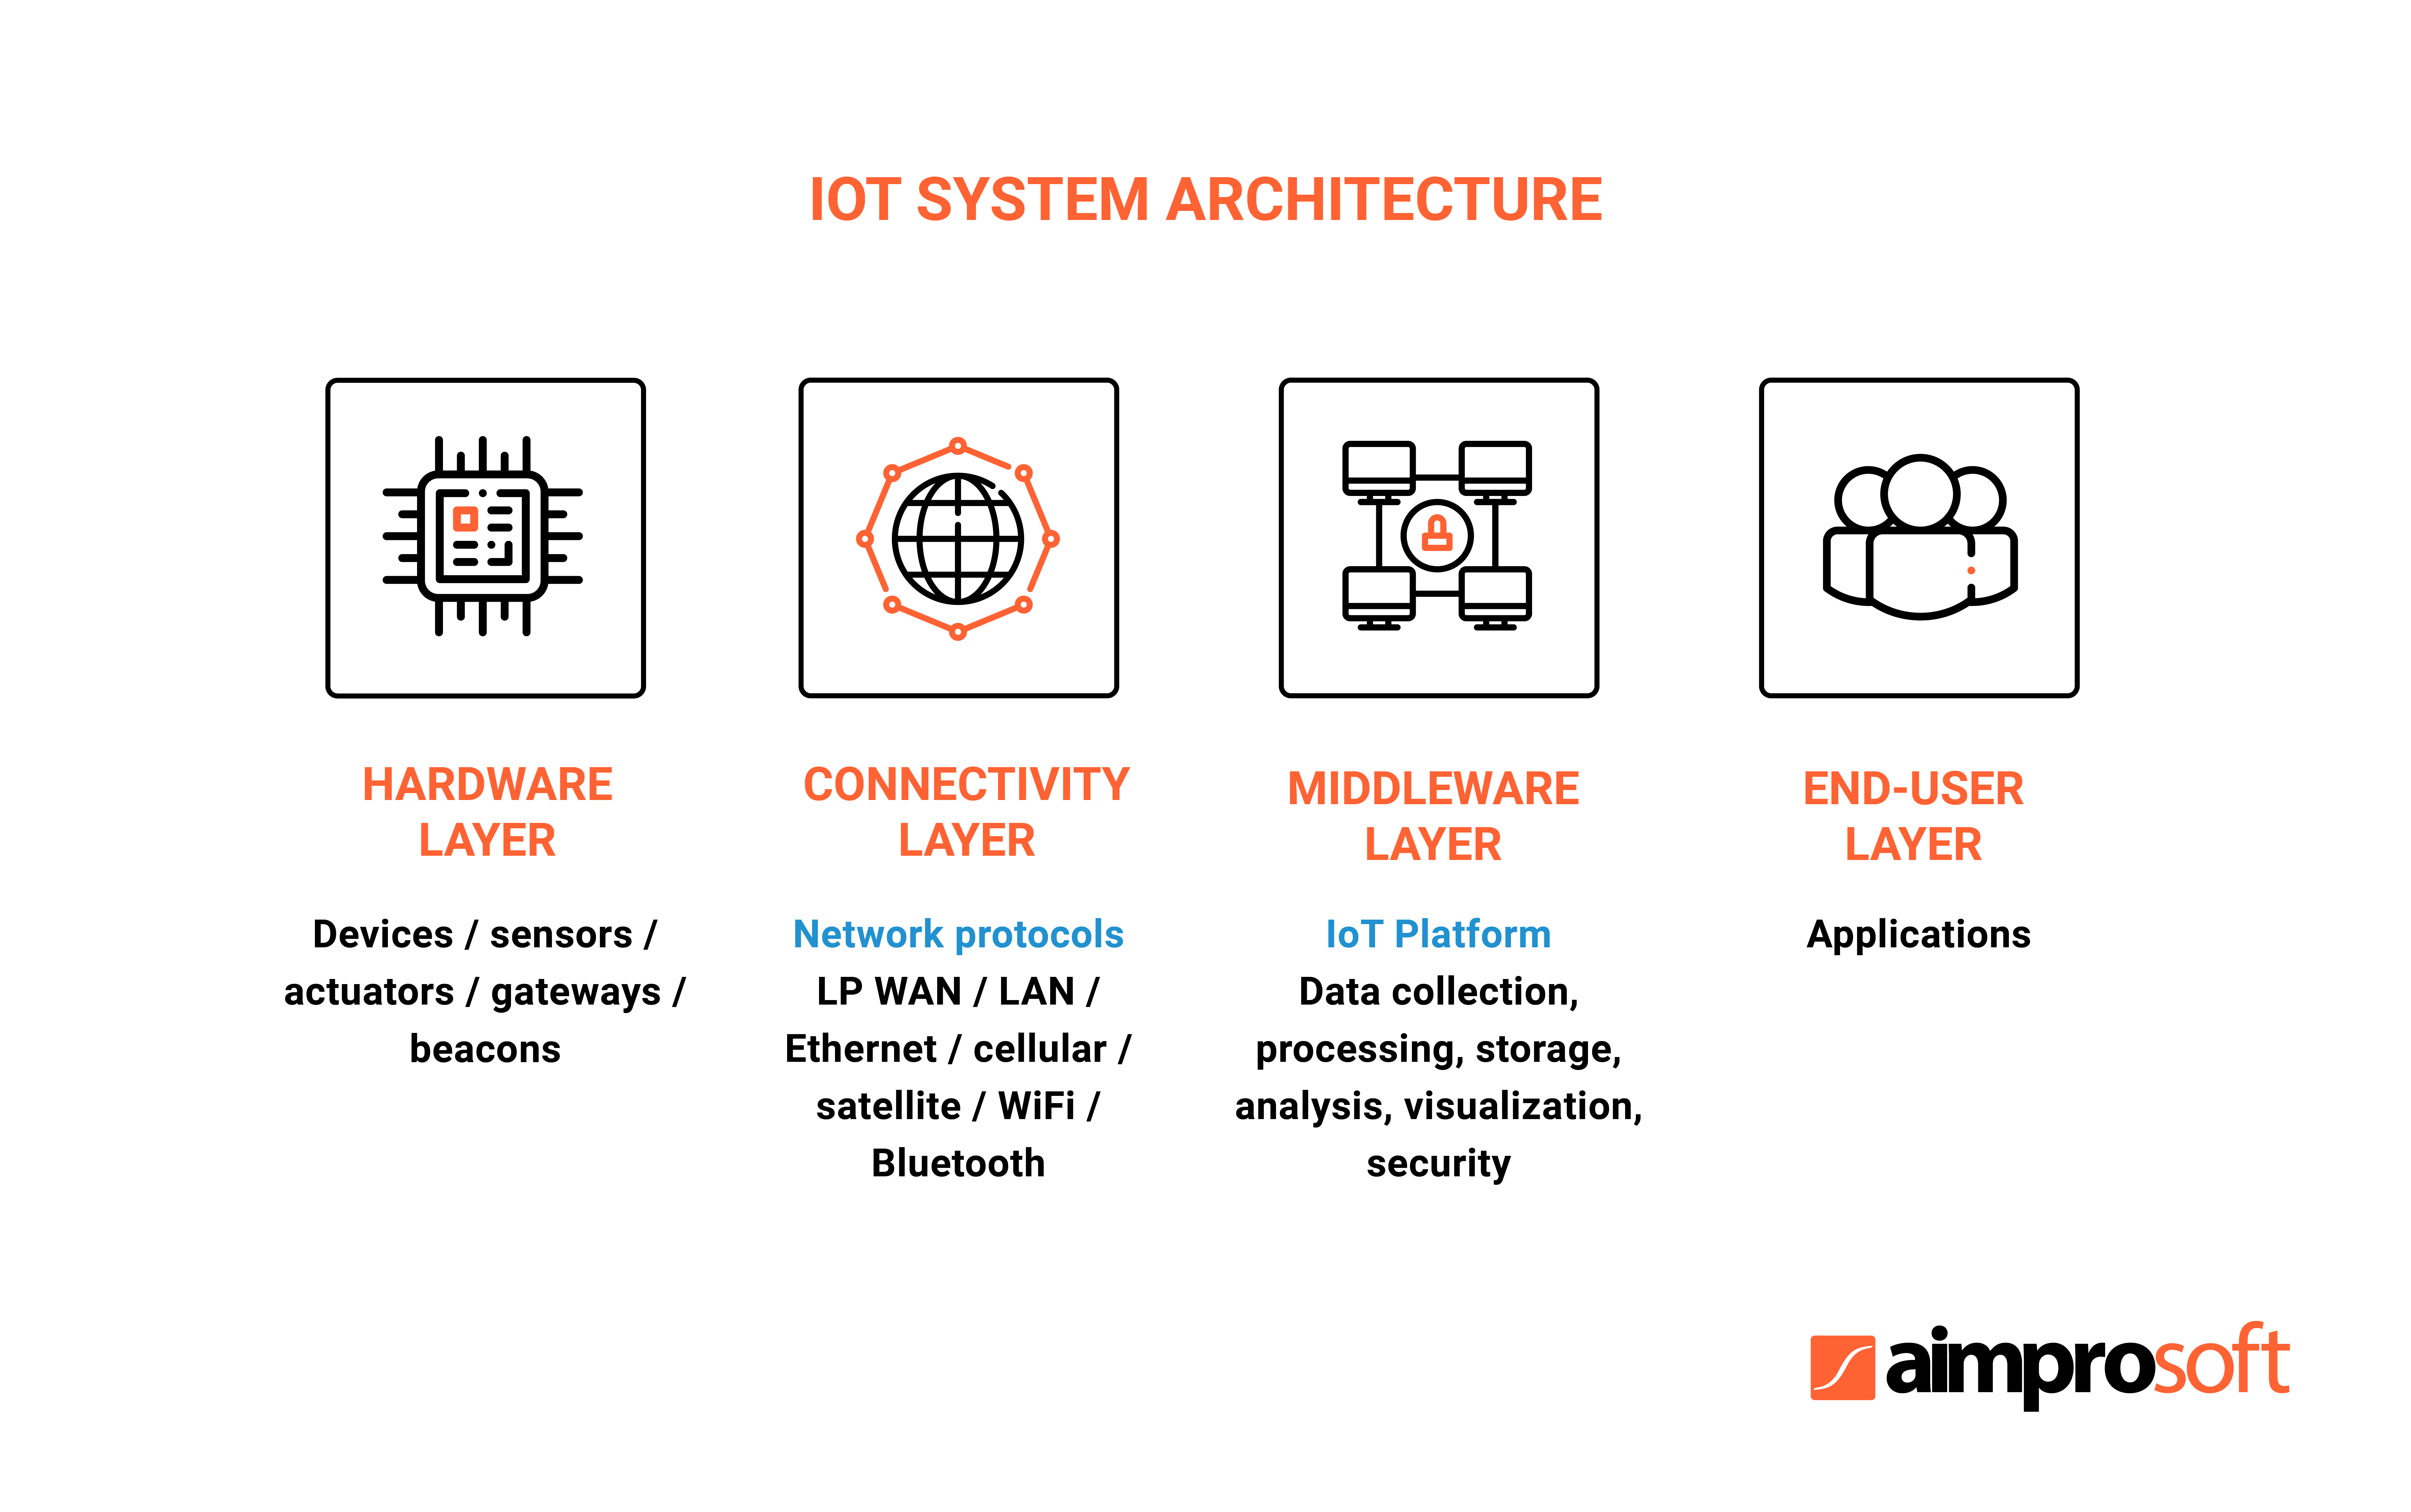 IoT system architecture including IoT app layer